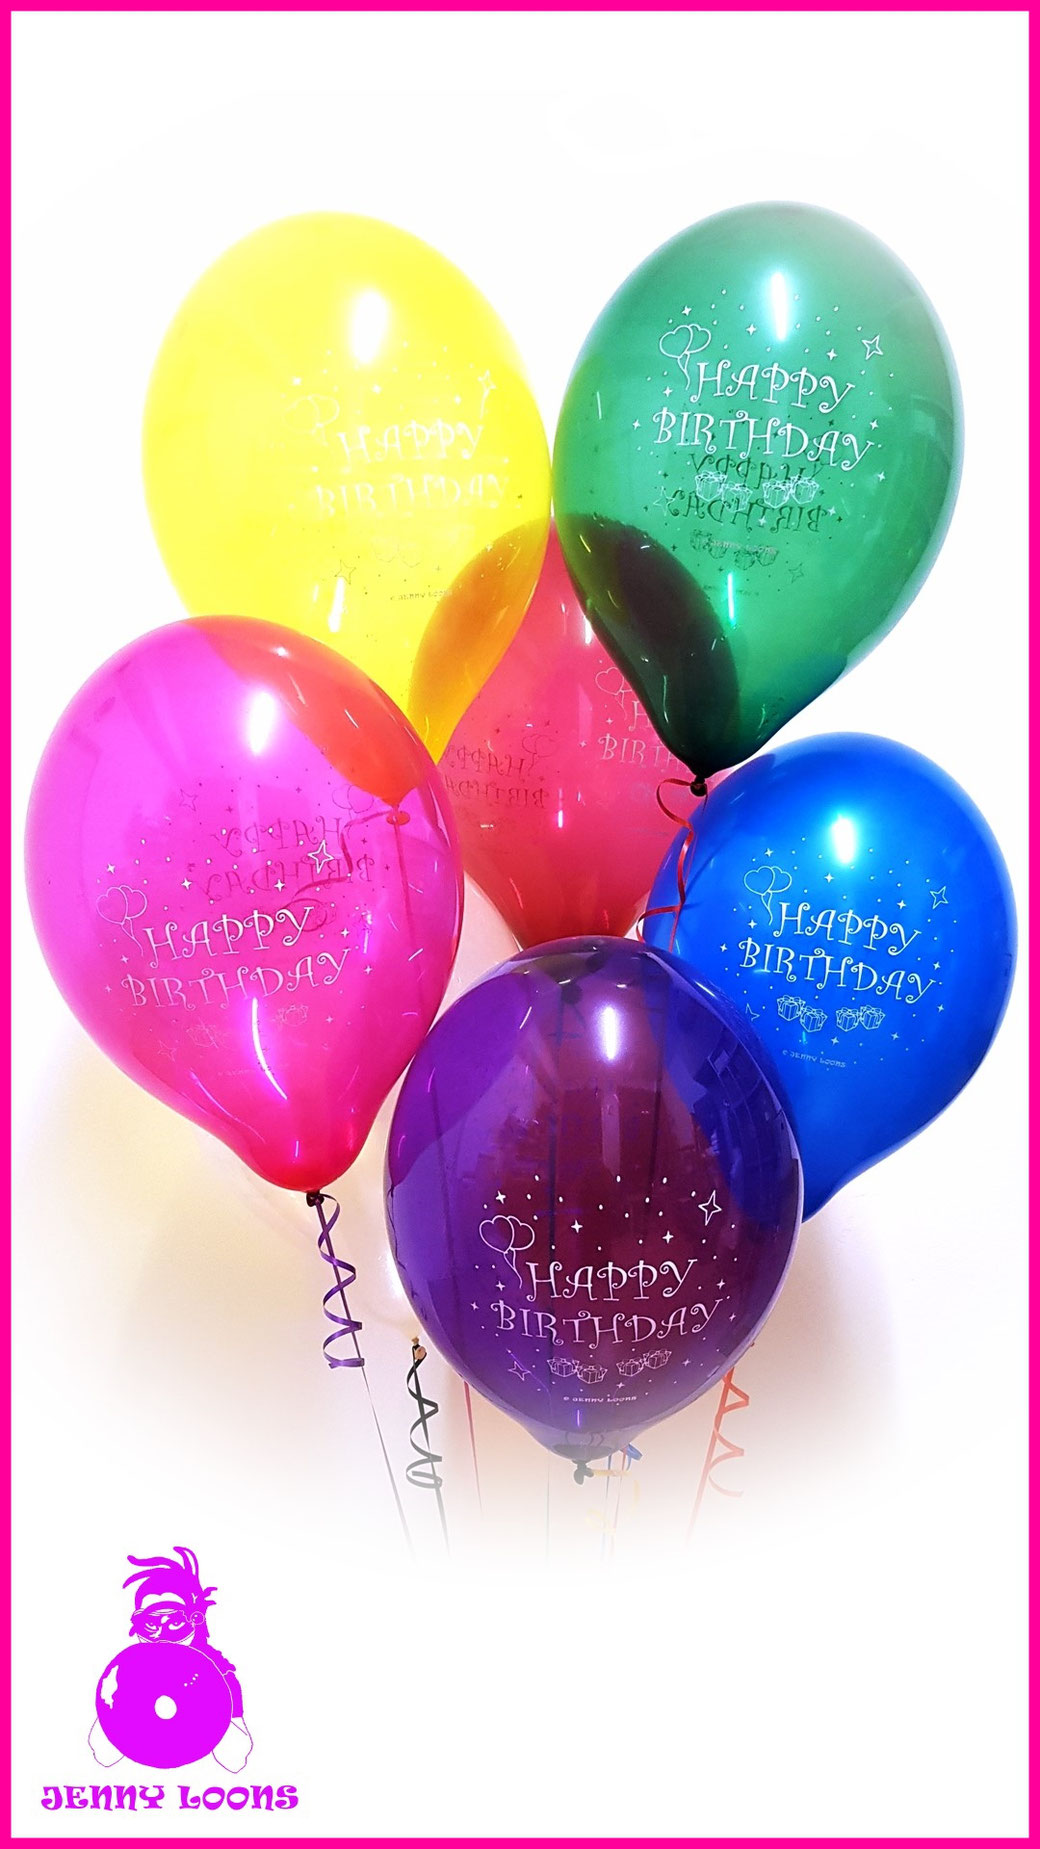 "Balbal Luftballon Balloon B120 14"" 36cm Happy Birthday"